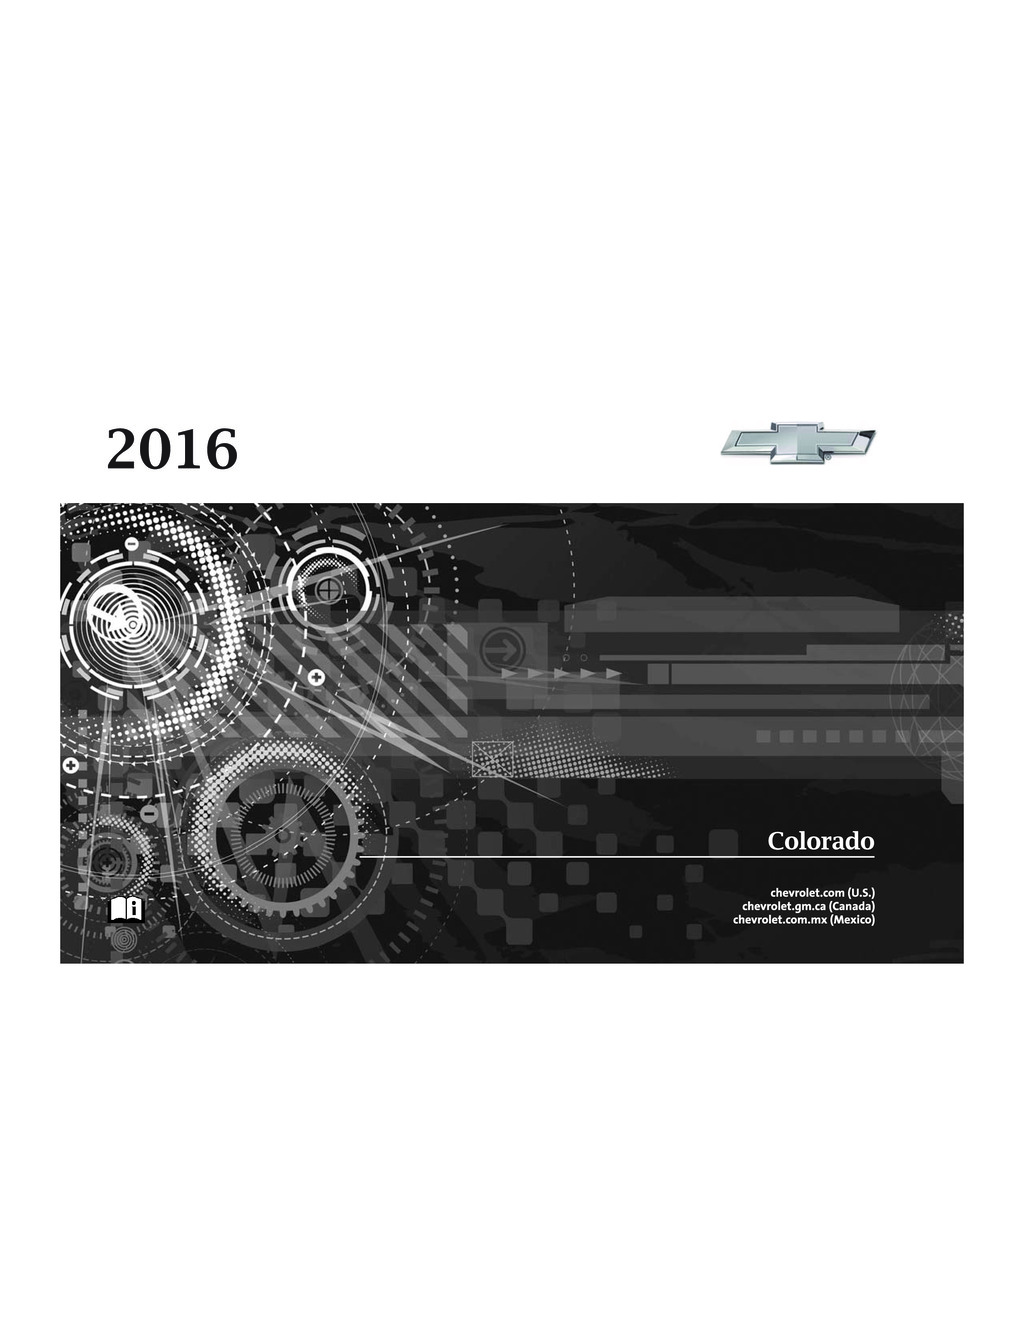 2016 Chevrolet Colorado owners manual